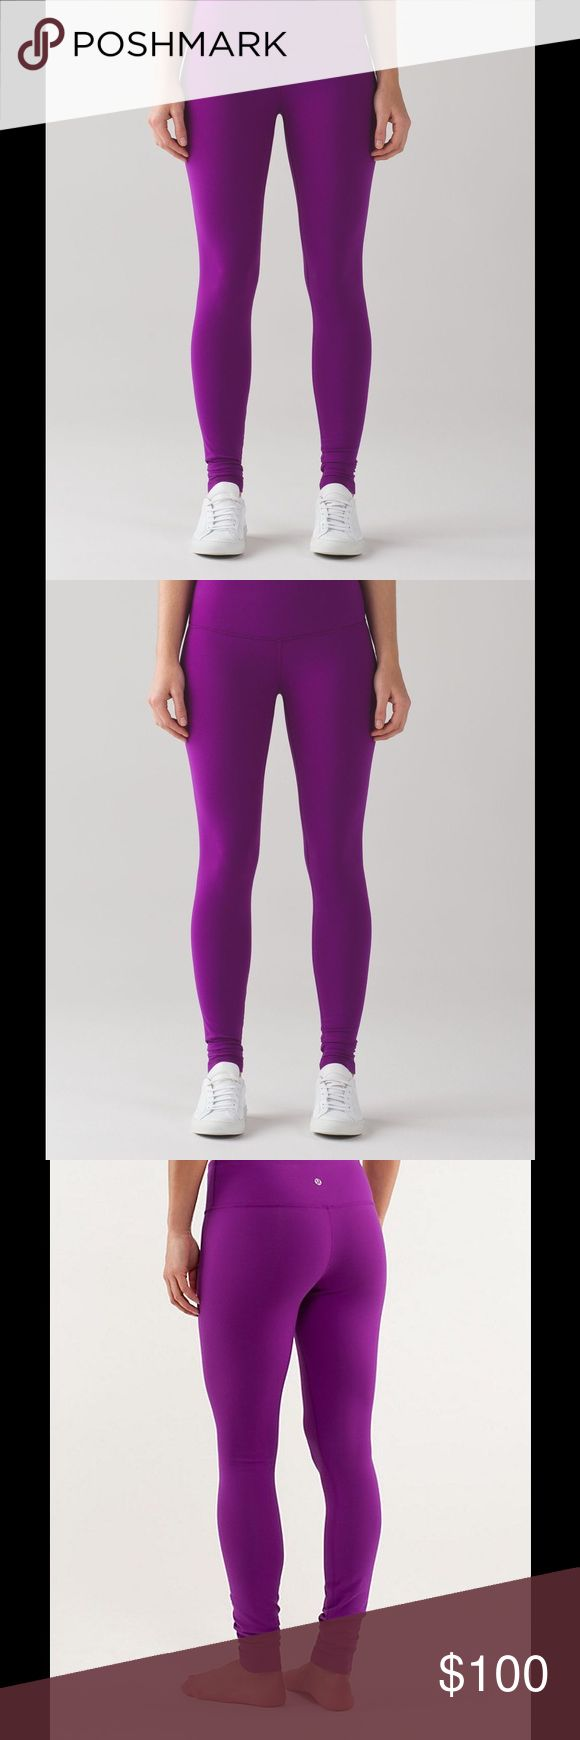 Lululemon wunder under pant size 2 Wont be shipped until 03/20. I listed it now bc there is a coupon on e🅱️ay for 20% off. Valid til mar 11th. If ur ok with me shipping it later. You can purchase there or here. NWT. Beautiful purple color. Color code is tender violet. Reasonable offers through offer button are welcomed but lowballer will be blocked. No trades. lululemon athletica Pants Leggings